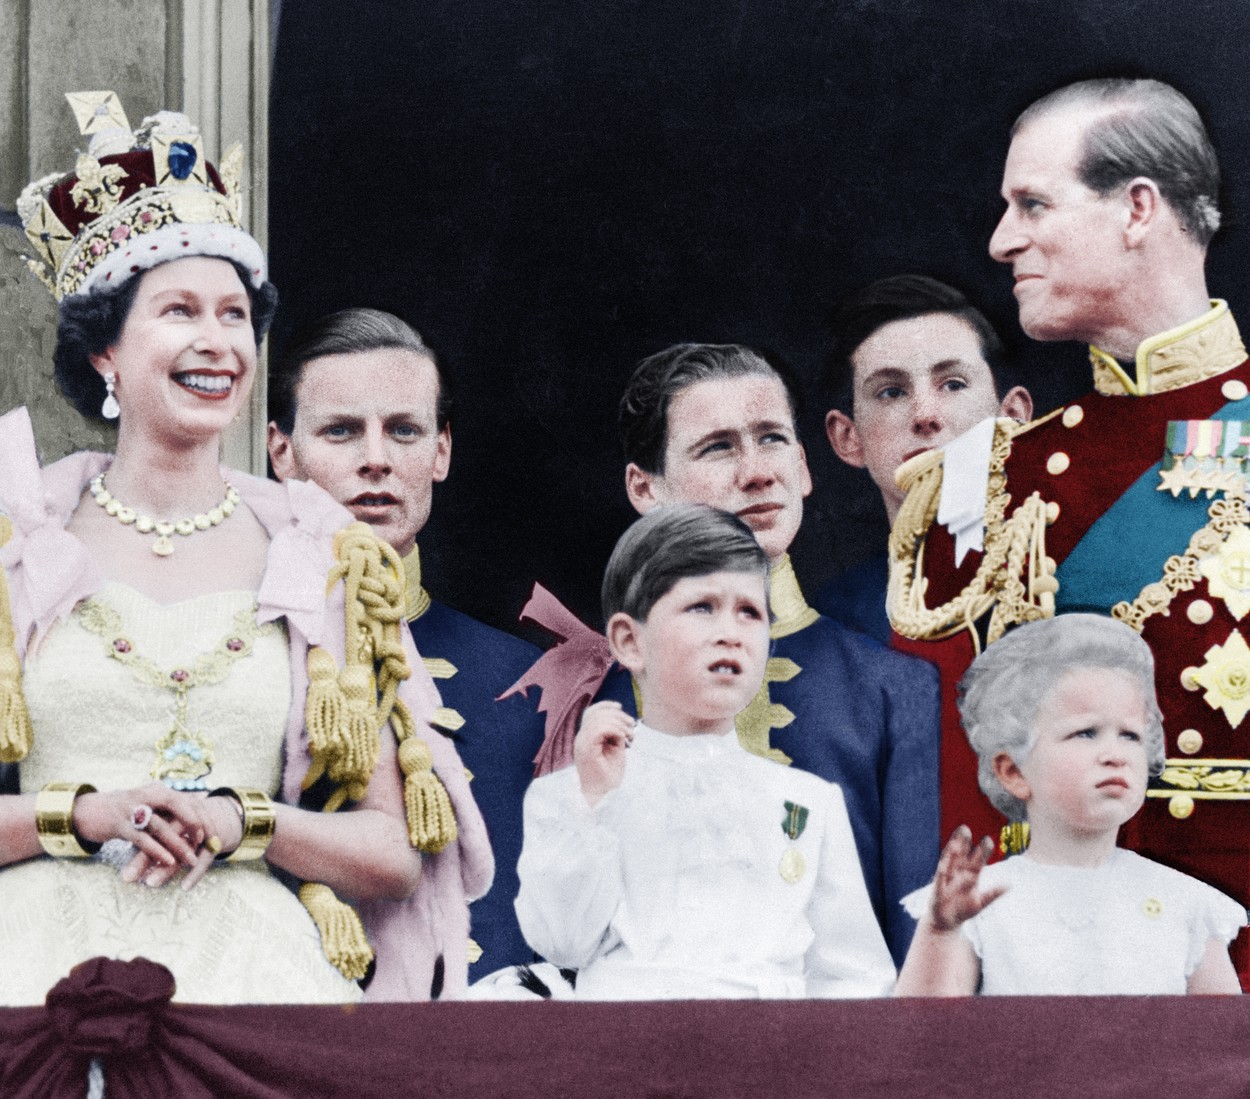 LONDON, UK: A colourised image showing how the Royal family celebrate the coronation of Queen Elizabeth II at  Palace, front row from left to right, Queen Elizabeth, Prince Charles, Princess Anne, Prince Phillip. 1953. STUNNING COLOURISED PHOTOS from a new photobook Retrographic show the day the Queen was coronated with husband Philip by her side have emerged this week, on the Royal couple's platinum wedding anniversary. Photos from the couple's 70 years as husband and wife show the two at a string of state visits from around the world, with one image showing the two posing for a picture with former U.S. President John F Kennedy and first lady Jackie. / Public Domain / mediadrumworld.com, Image: 355777891, License: Rights-managed, Restrictions: , Model Release: no, Credit line: Public Domain / mediadrumworld.c / Media Drum World / Profimedia